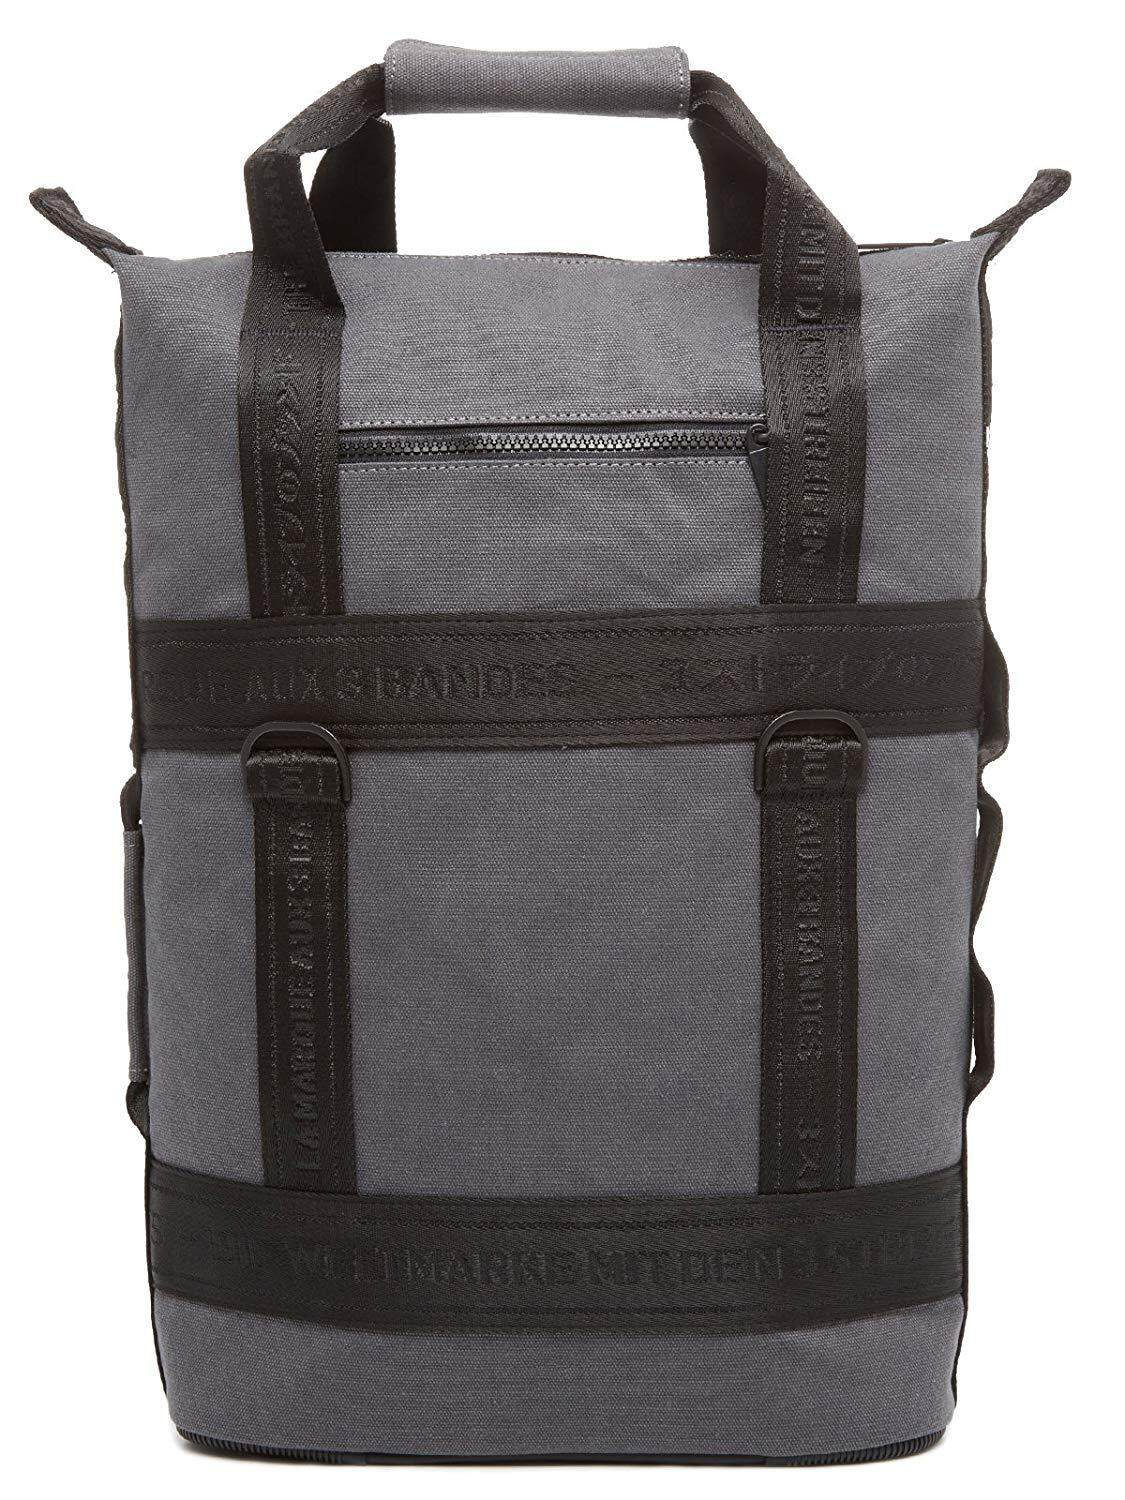 sale retailer 27980 f9c10 Adidas Nmd Mens Backpack Grey (CE2362)